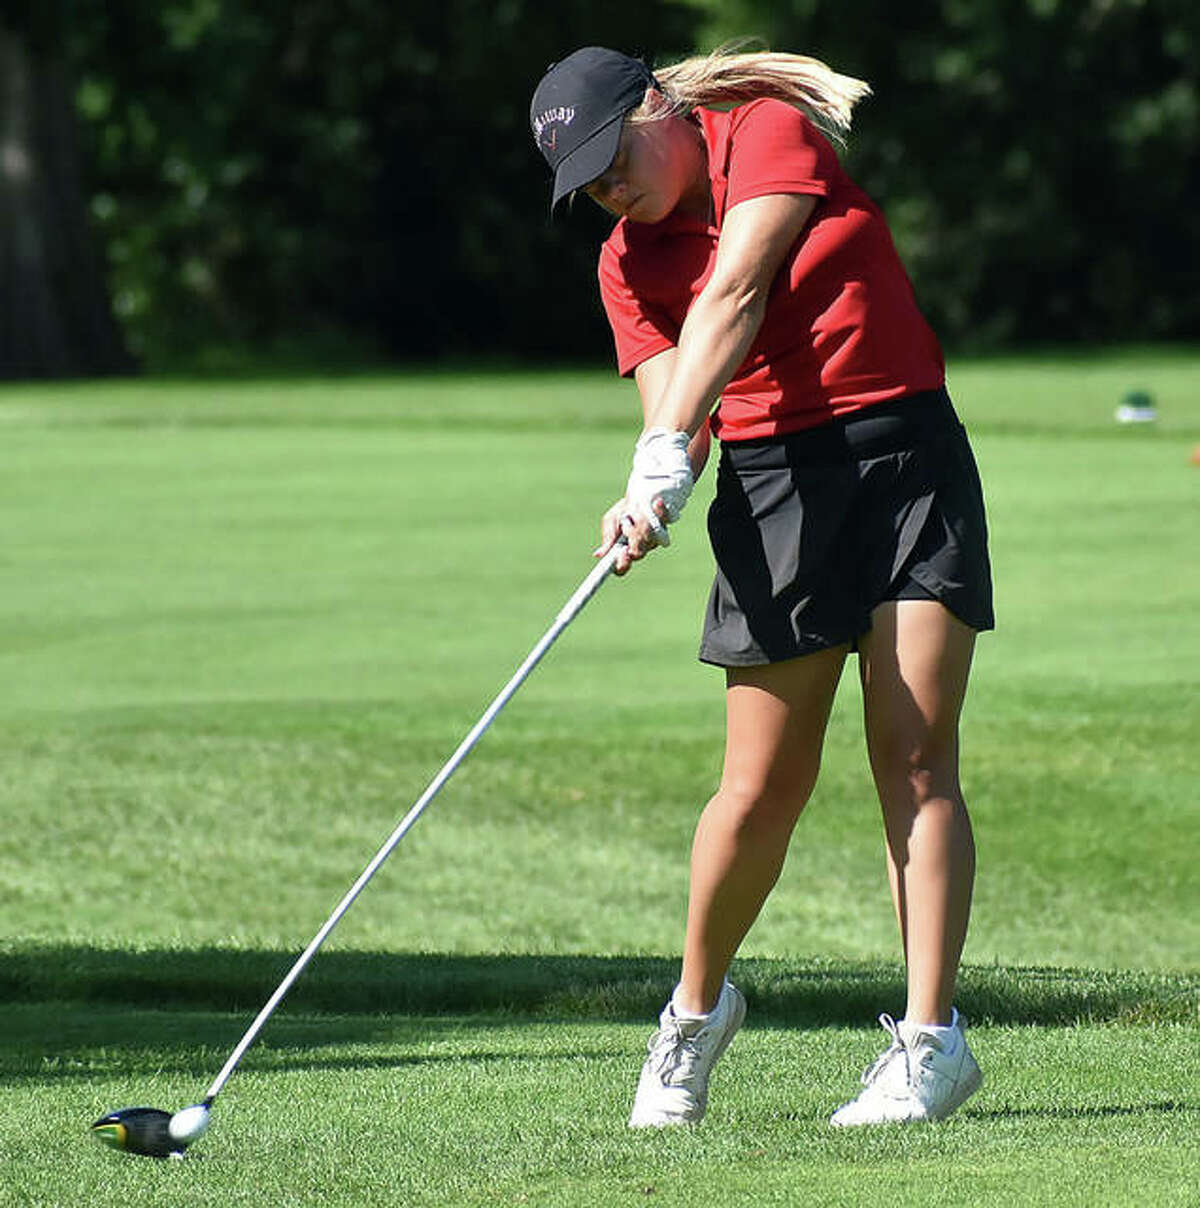 Godfrey's Audrey Cain, an incoming junior at Marquette Catholic, hits her drive at hole No. 12 Tuesday in the Illinois State Junior Girls Championship at Hickory Point Golf Course in Forsyth. Cain shot 86 and is tied for 60th place after day one of the two-day tourney.